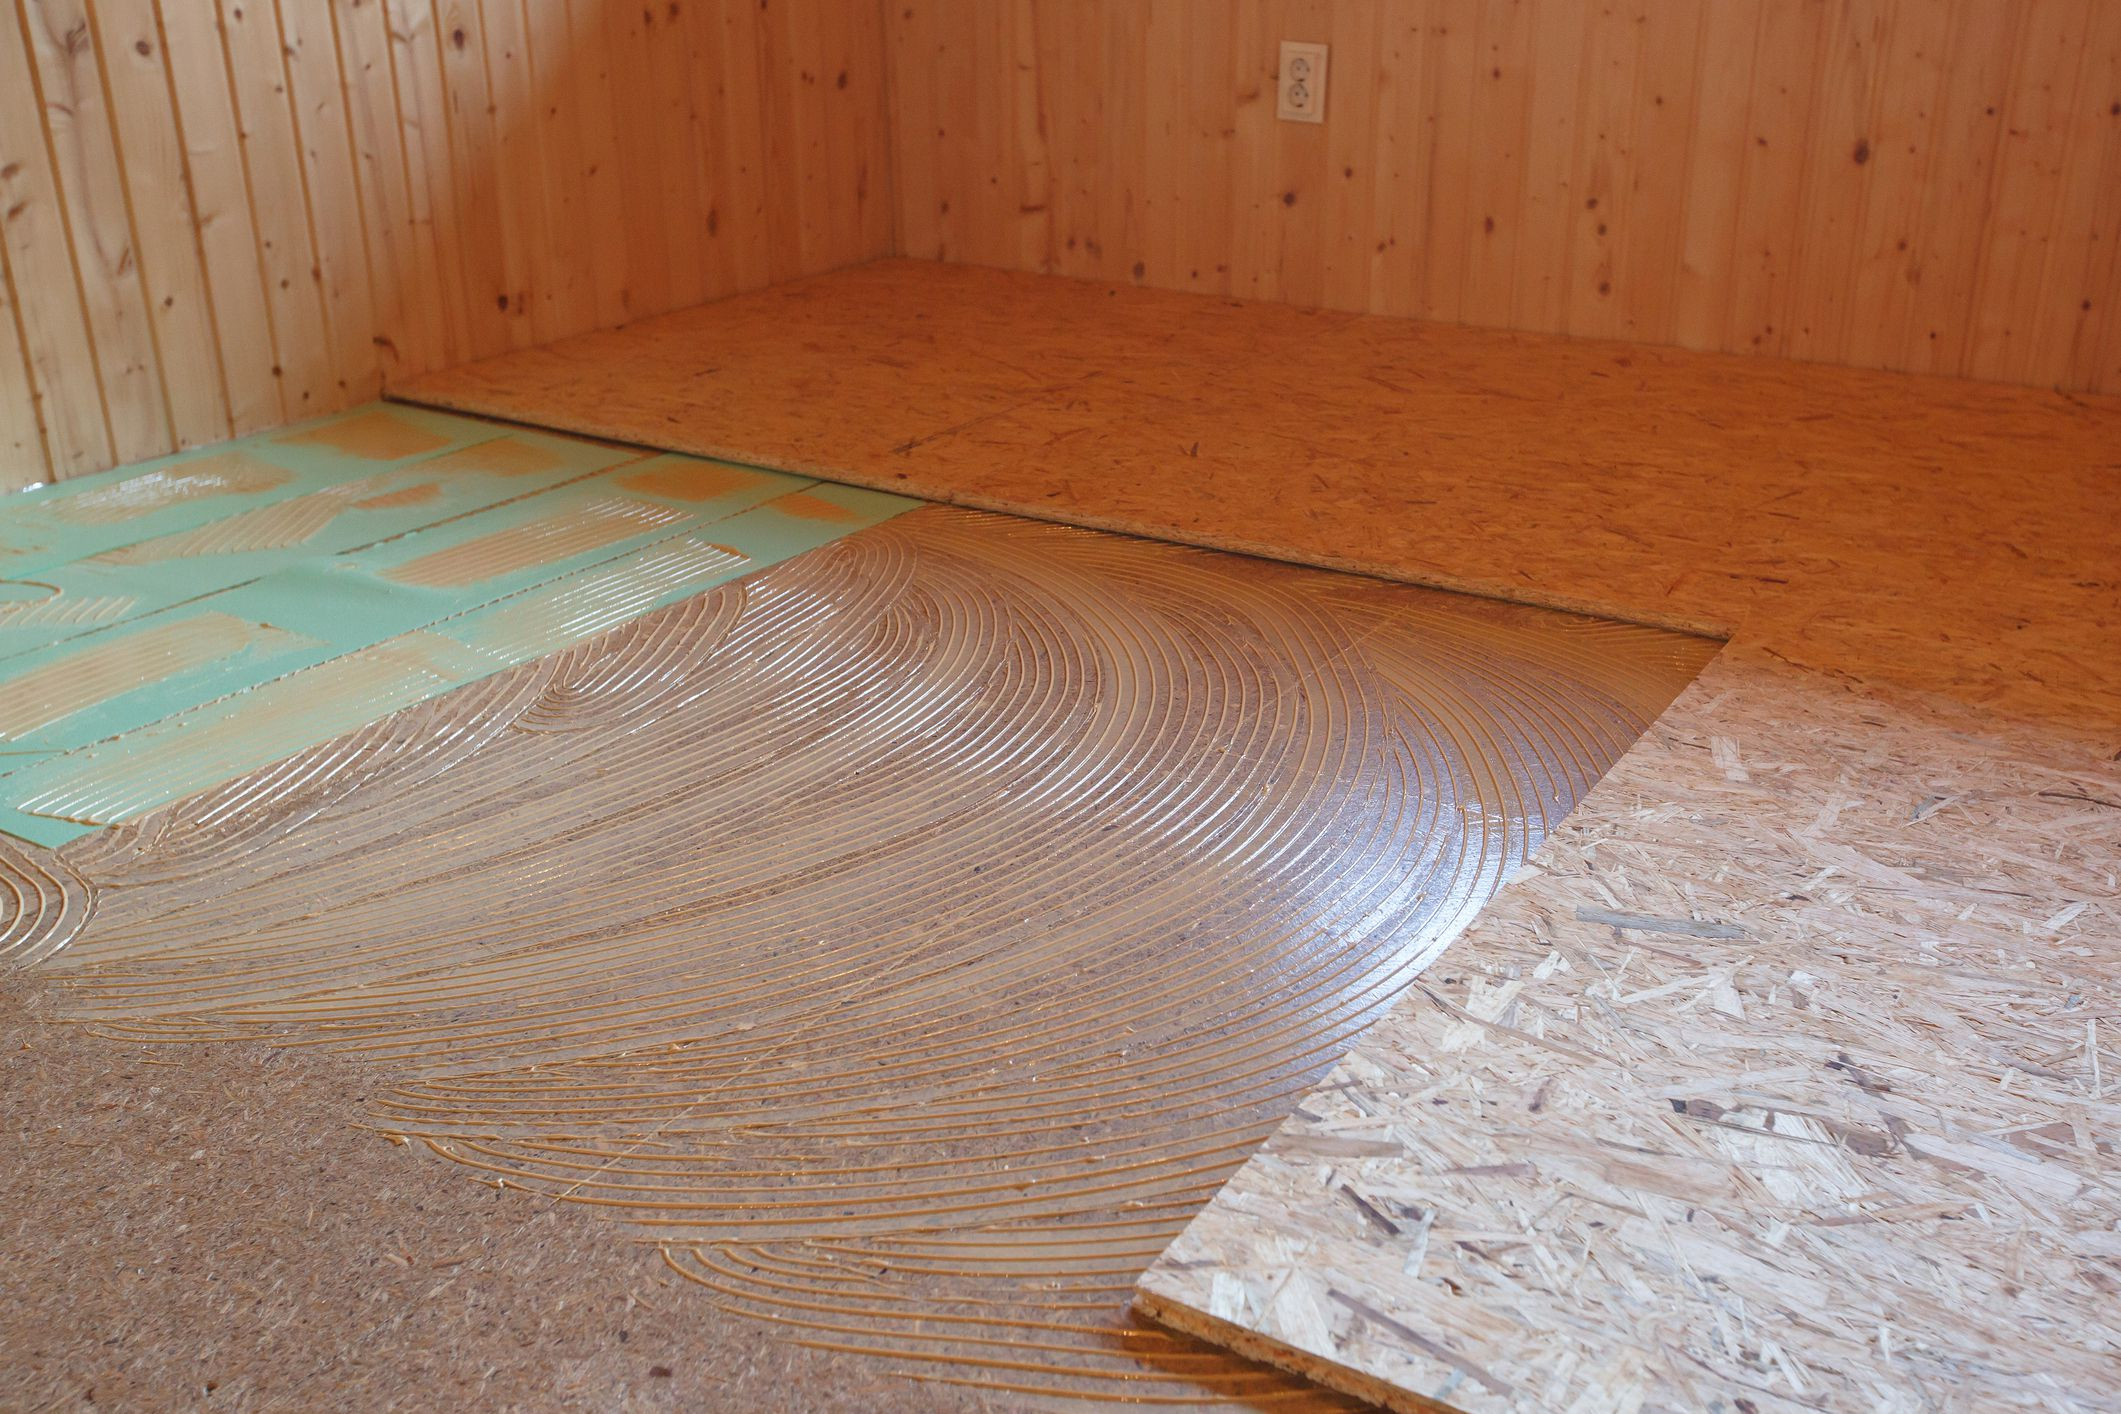 blue ridge hardwood flooring home depot of types of subfloor materials in construction projects pertaining to gettyimages 892047030 5af5f46fc064710036eebd22